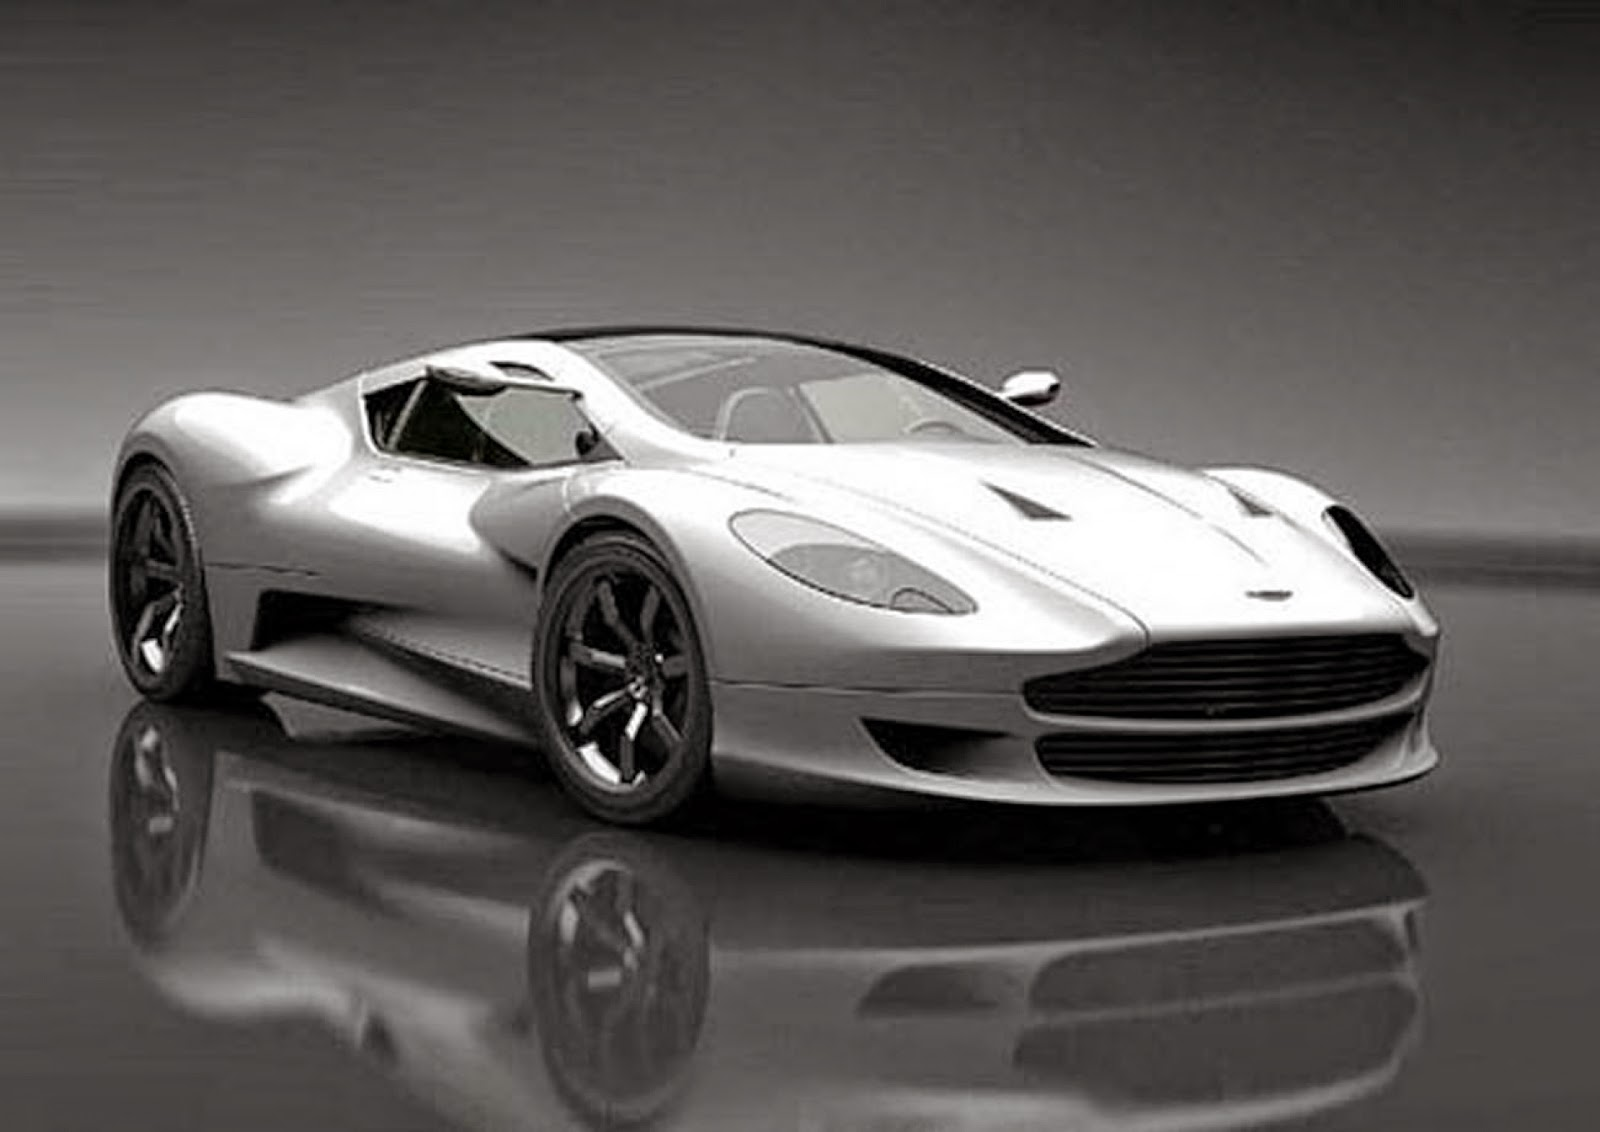 2014 Top 5 Luxury Sports Car and rare in the World - Mycarzilla